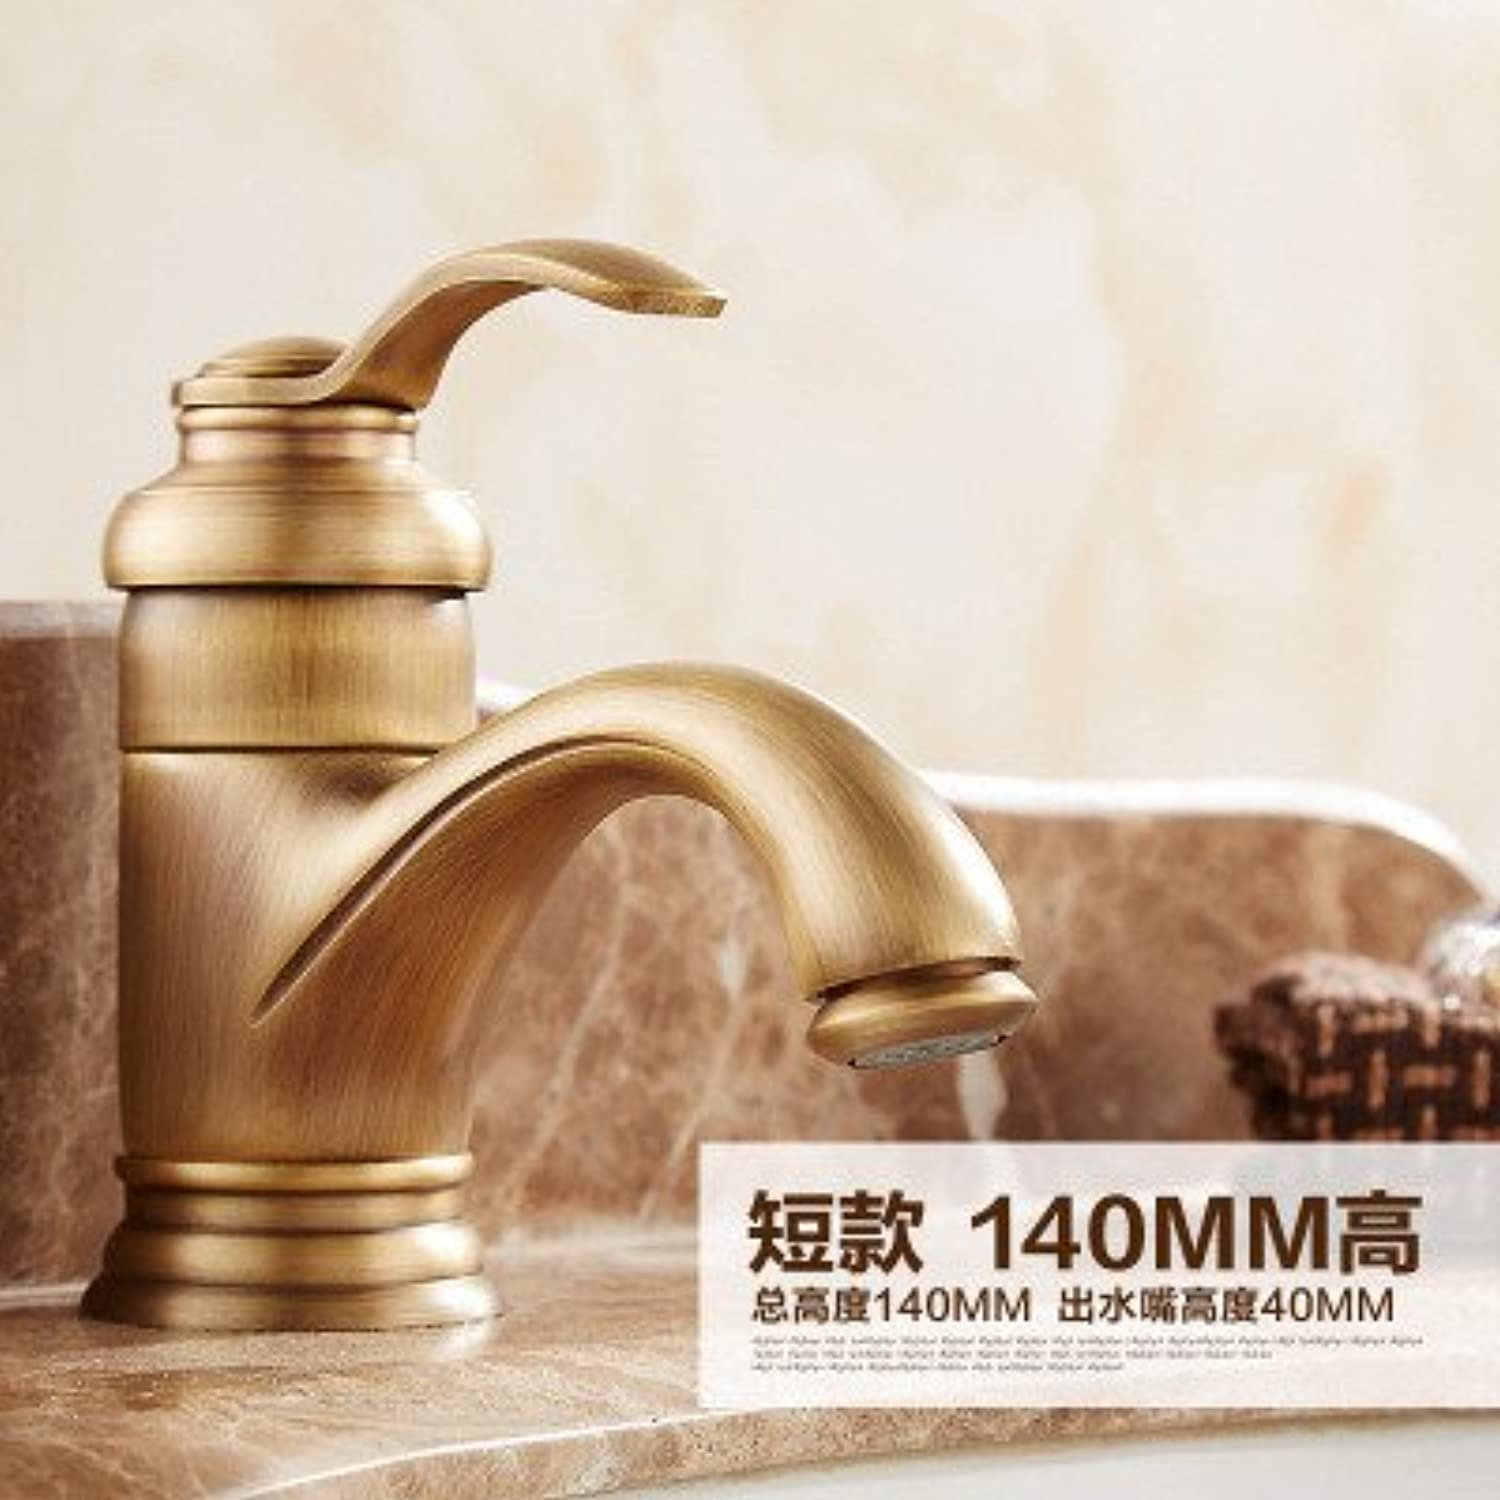 Hlluya Professional Sink Mixer Tap Kitchen Faucet The Antique copper hot and cold single hole basin mixer, low